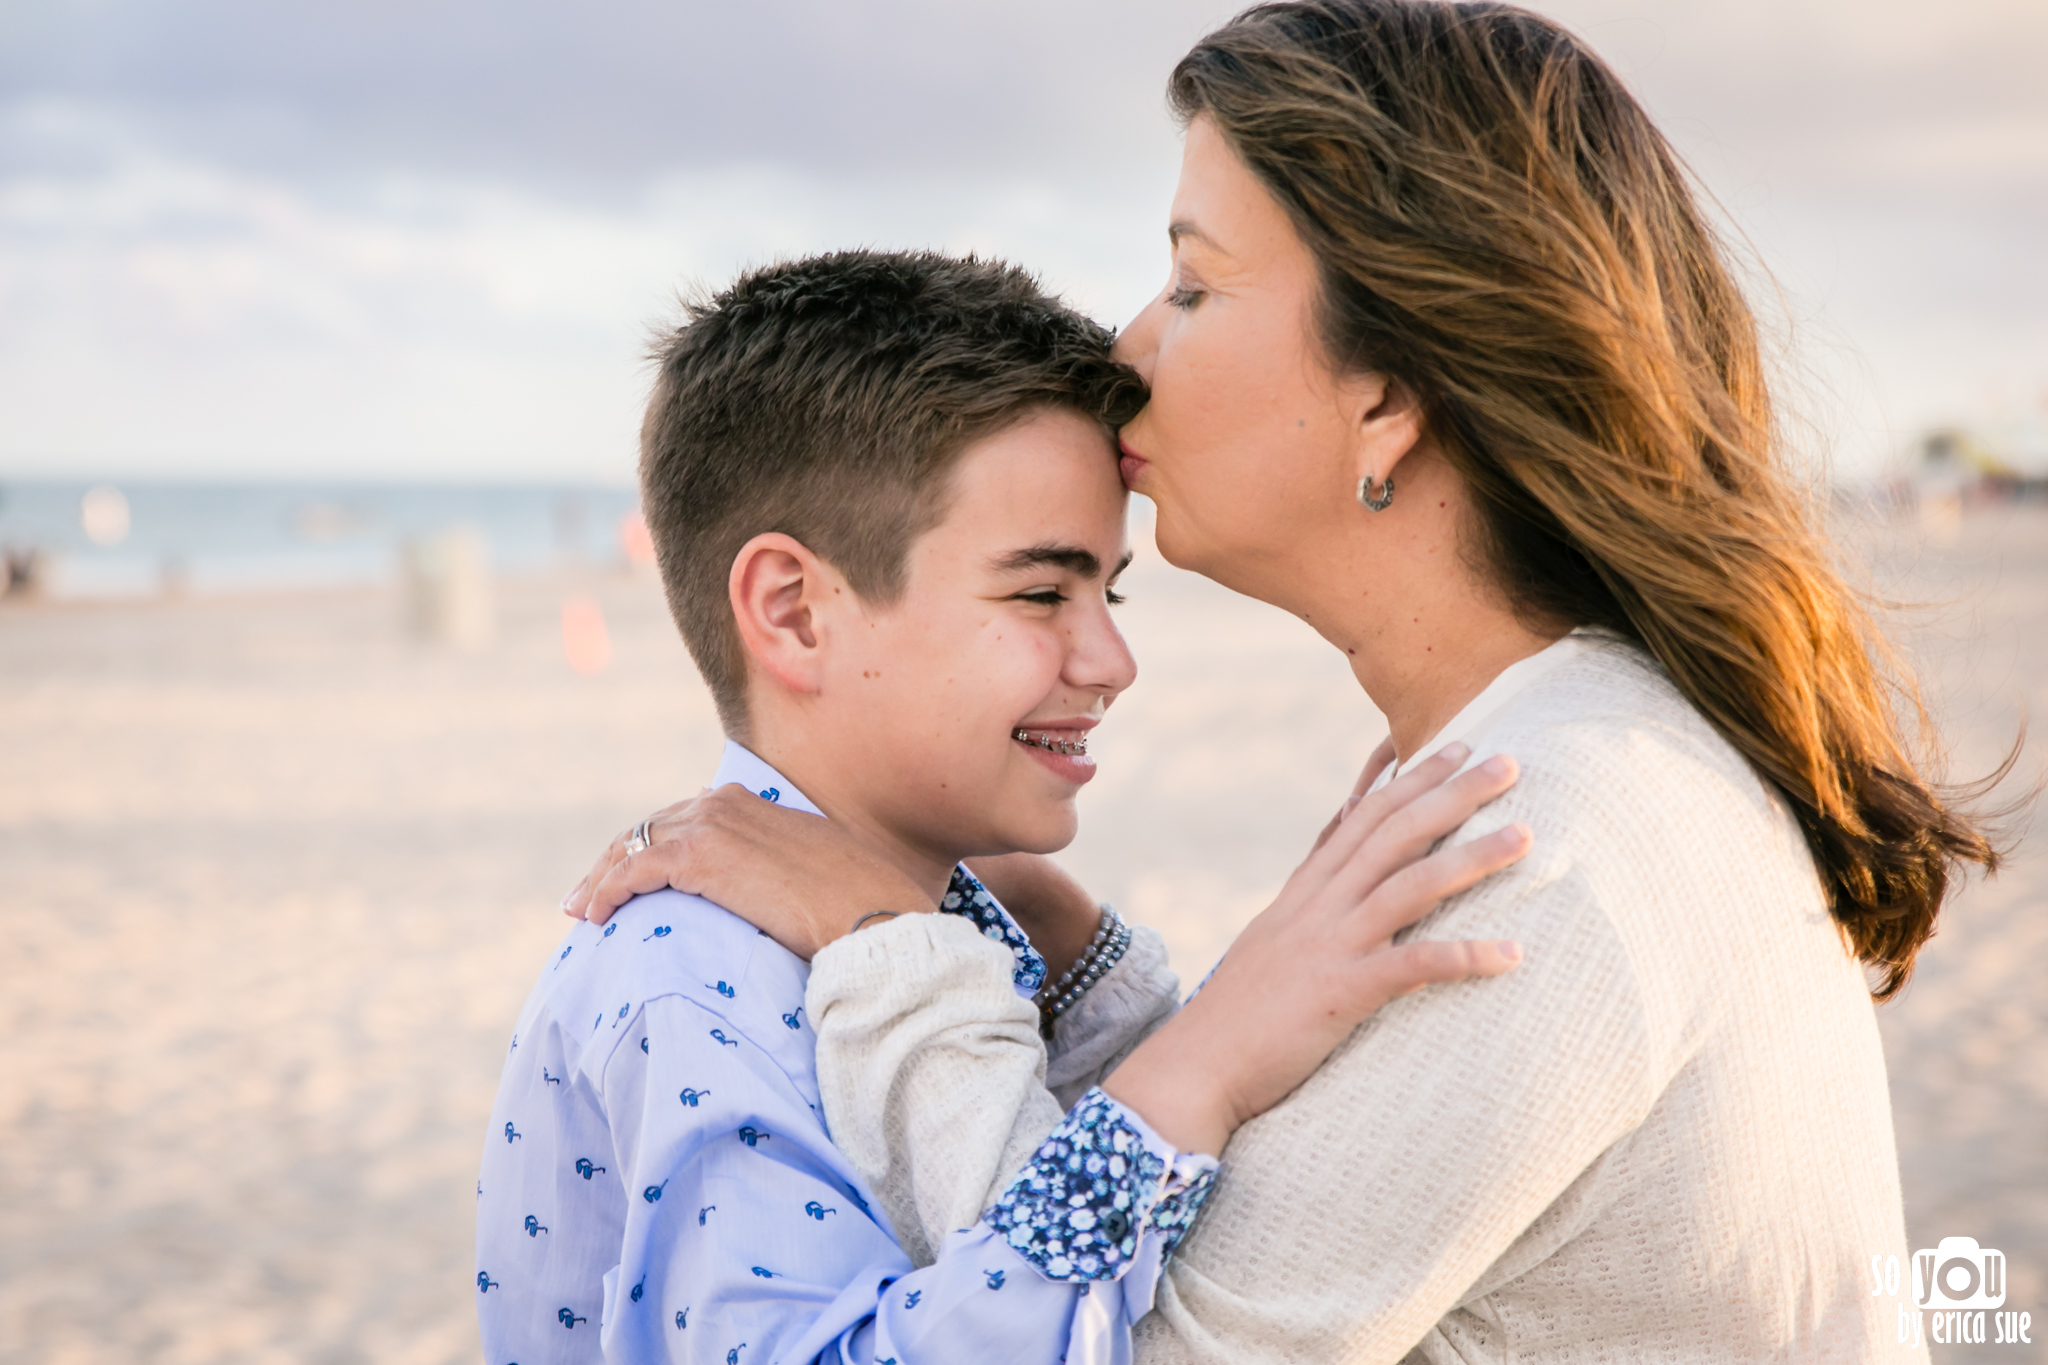 bar-mitzvay-pre-shoot-family-photography-so-you-by-erica-sue-ft-lauderdale-fl-florida-beach-9067.jpg